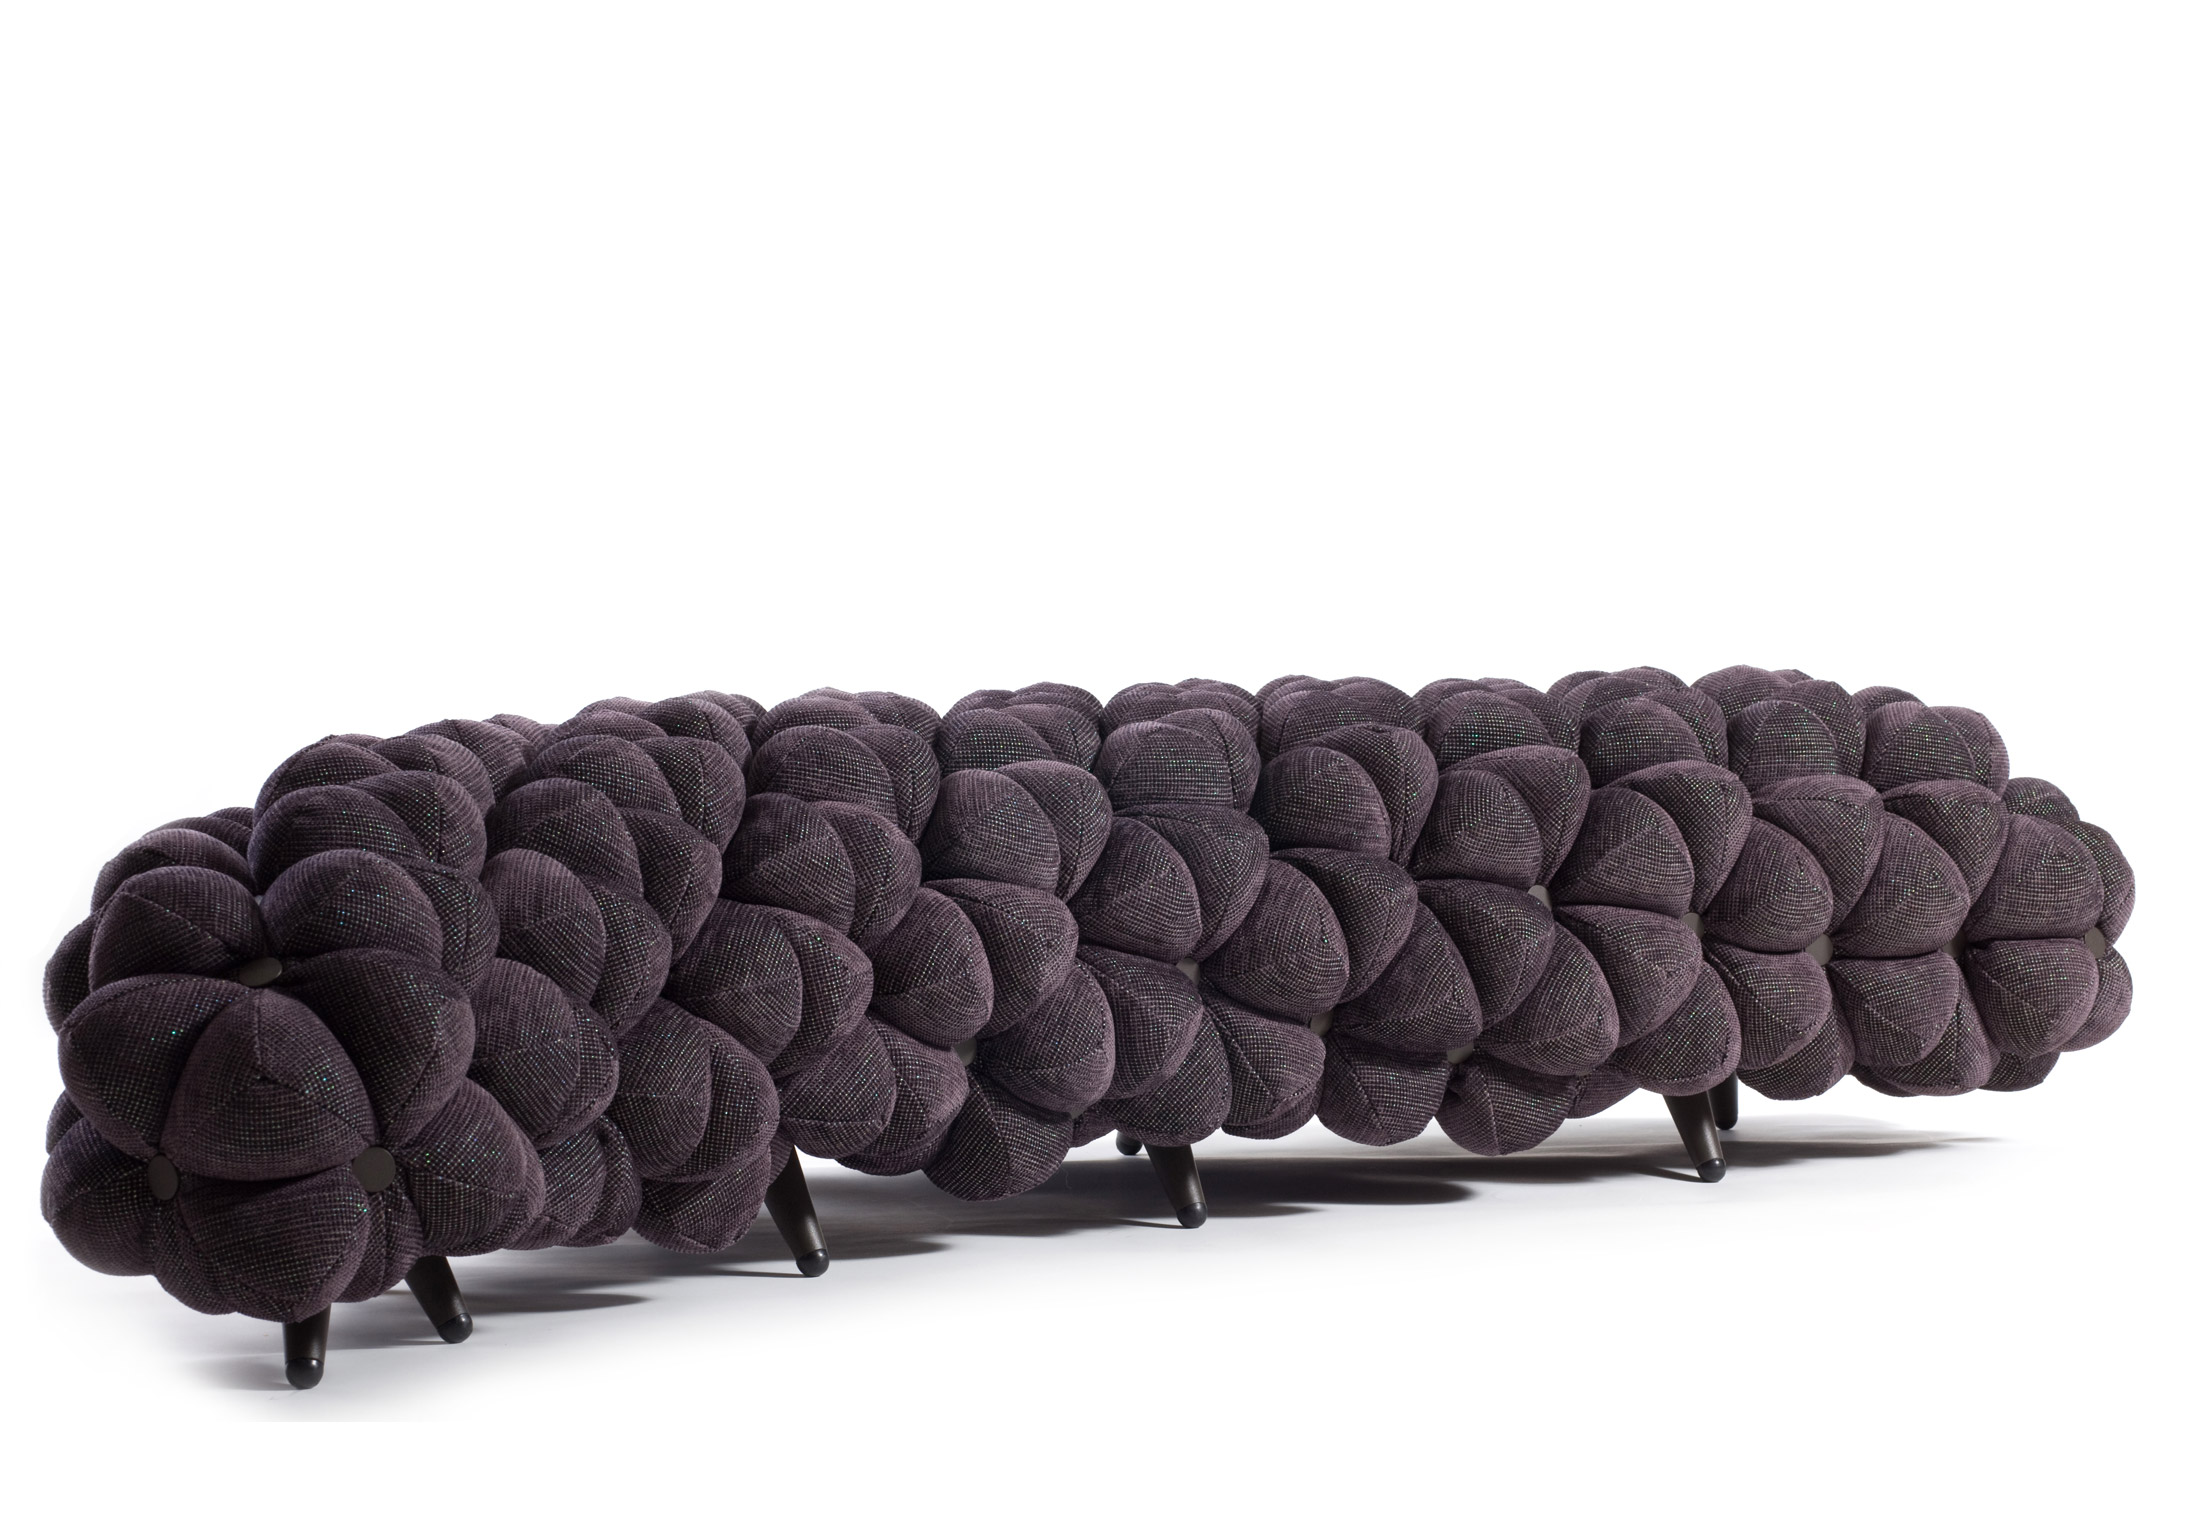 Anana Bench By Aqua Creations Stylepark